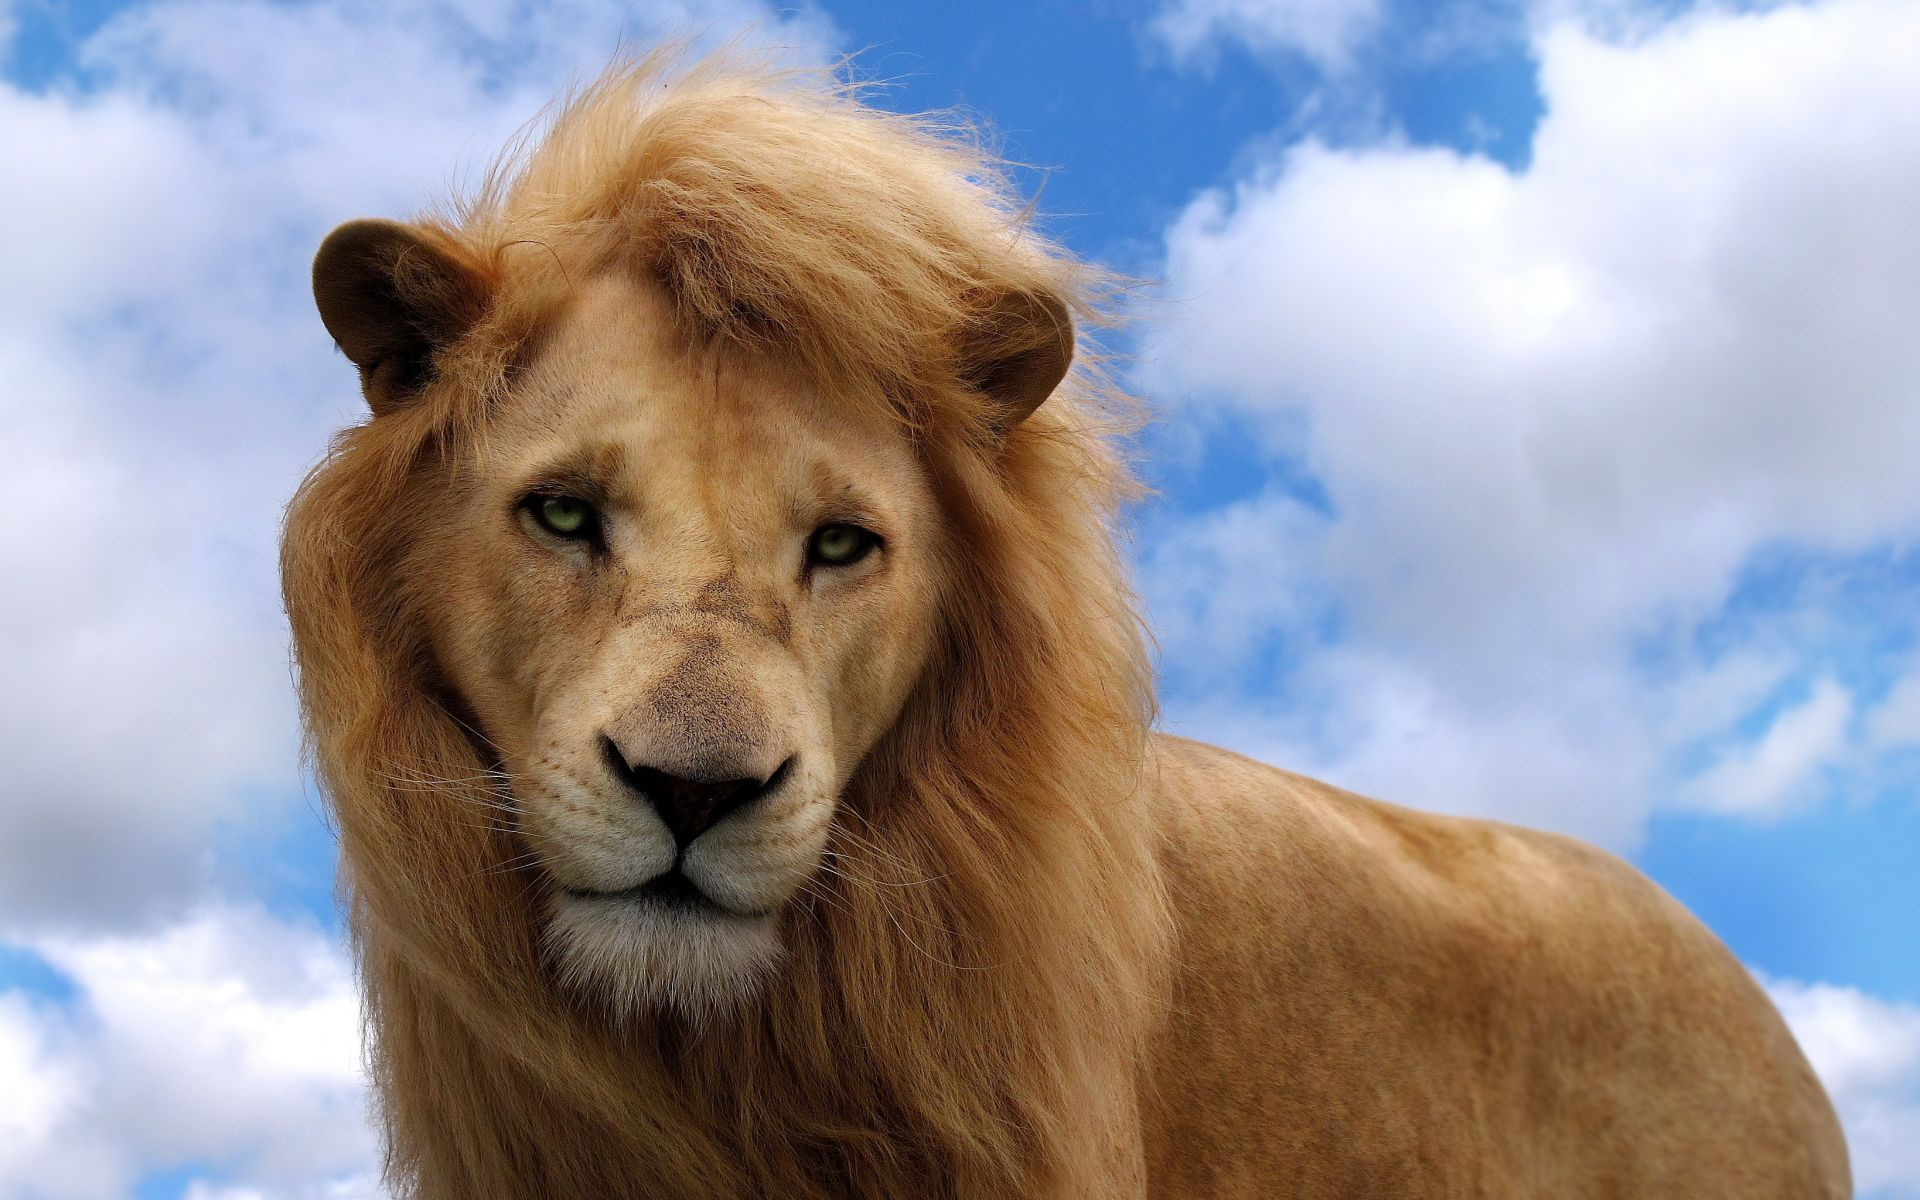 lion hd photo